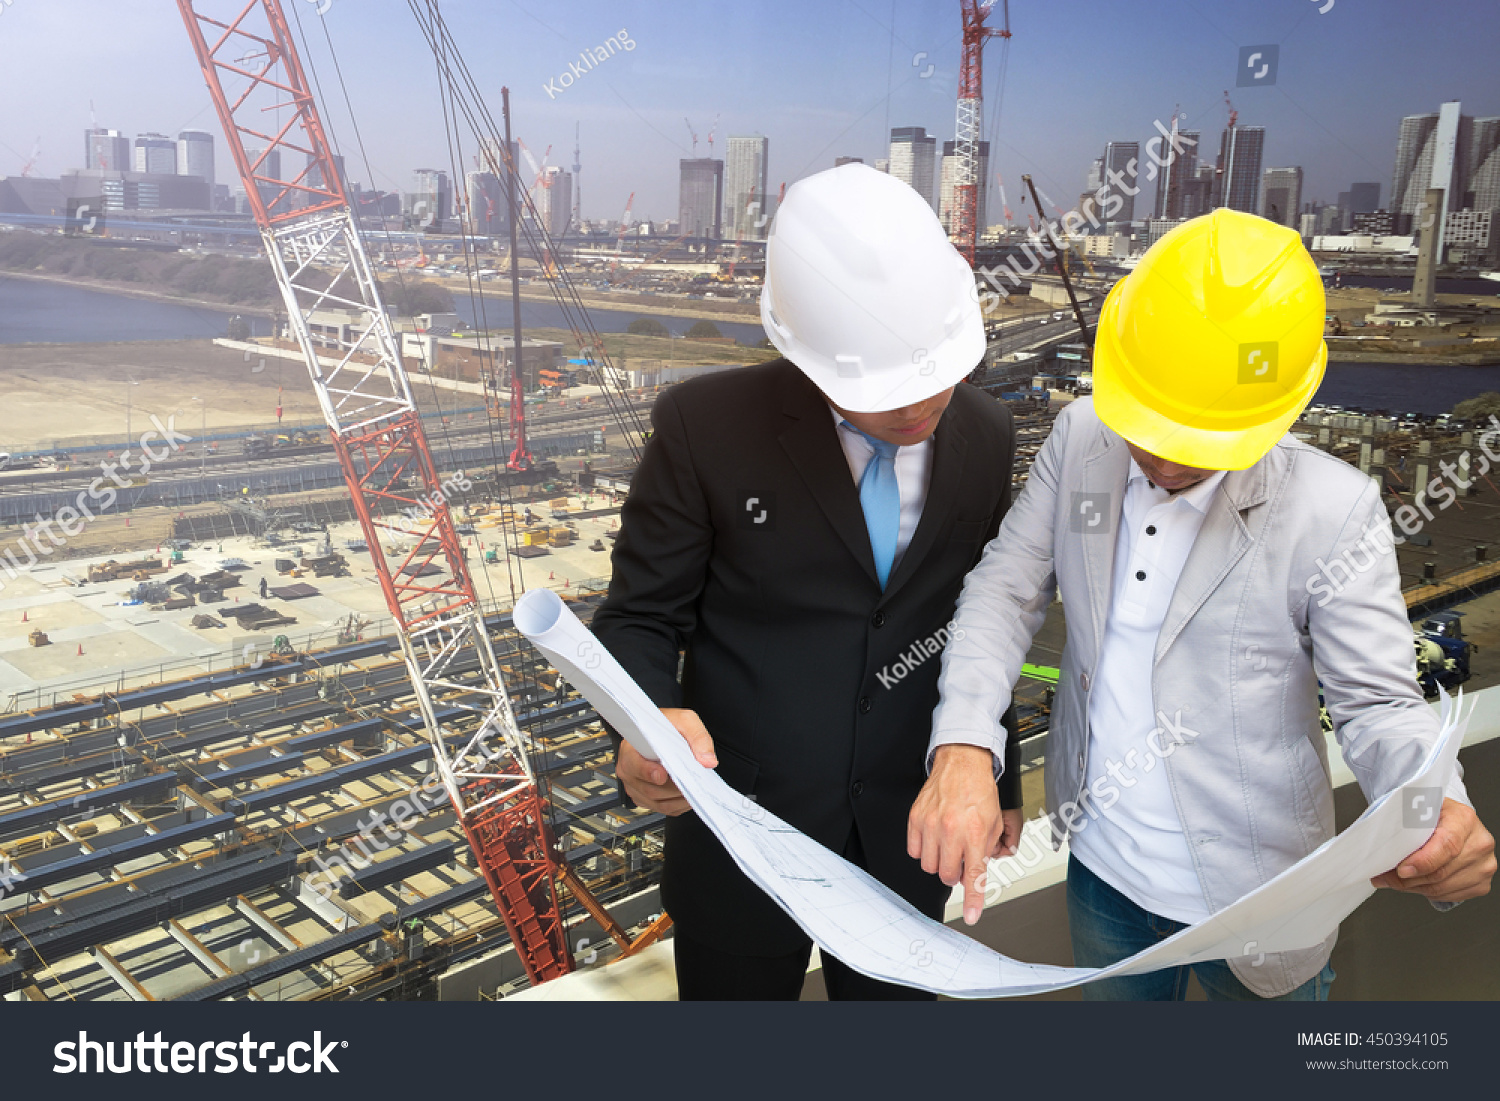 Management consulting engineers working construction site stock management consulting engineers working construction site stock photo 450394105 shutterstock malvernweather Image collections